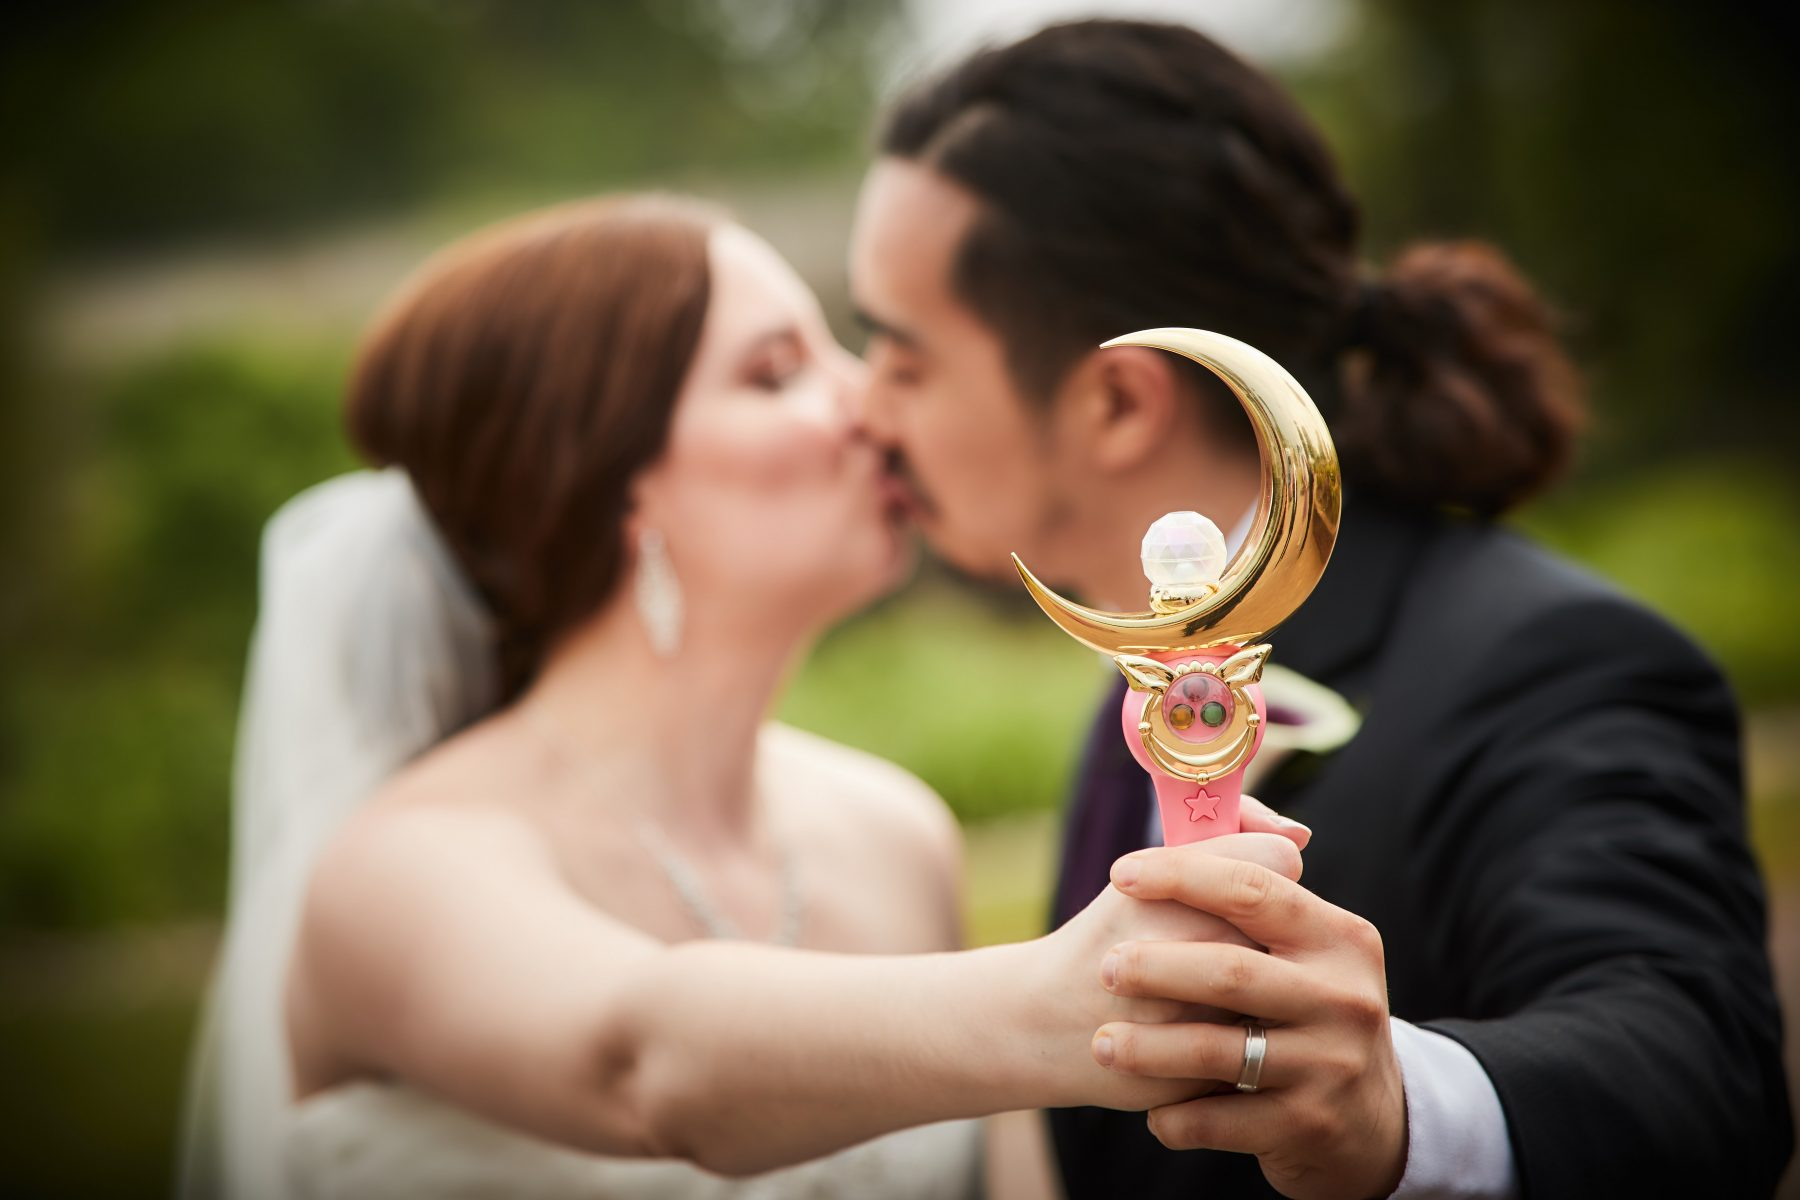 a bride and groom kiss while holding the moon stick up to the camera